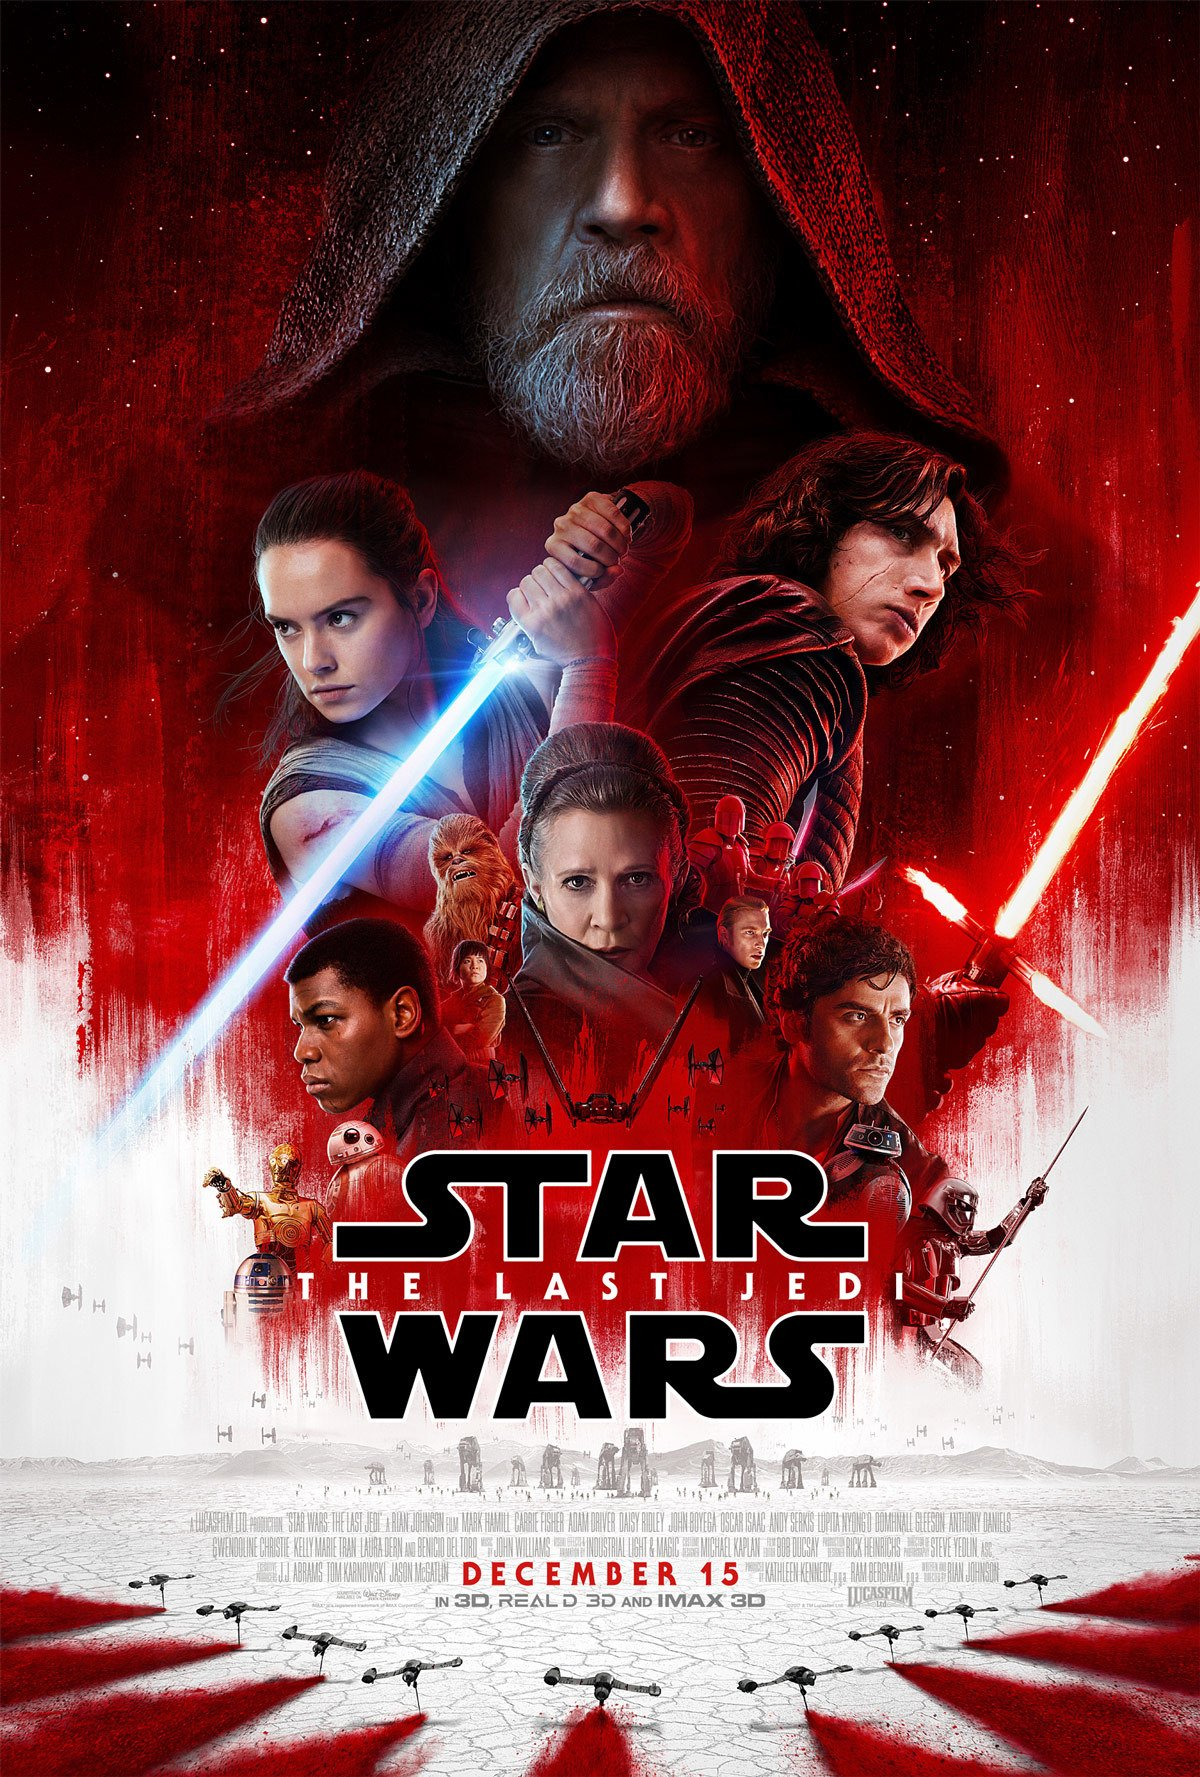 Star Wars: The Last Jedi Theatrical Poster